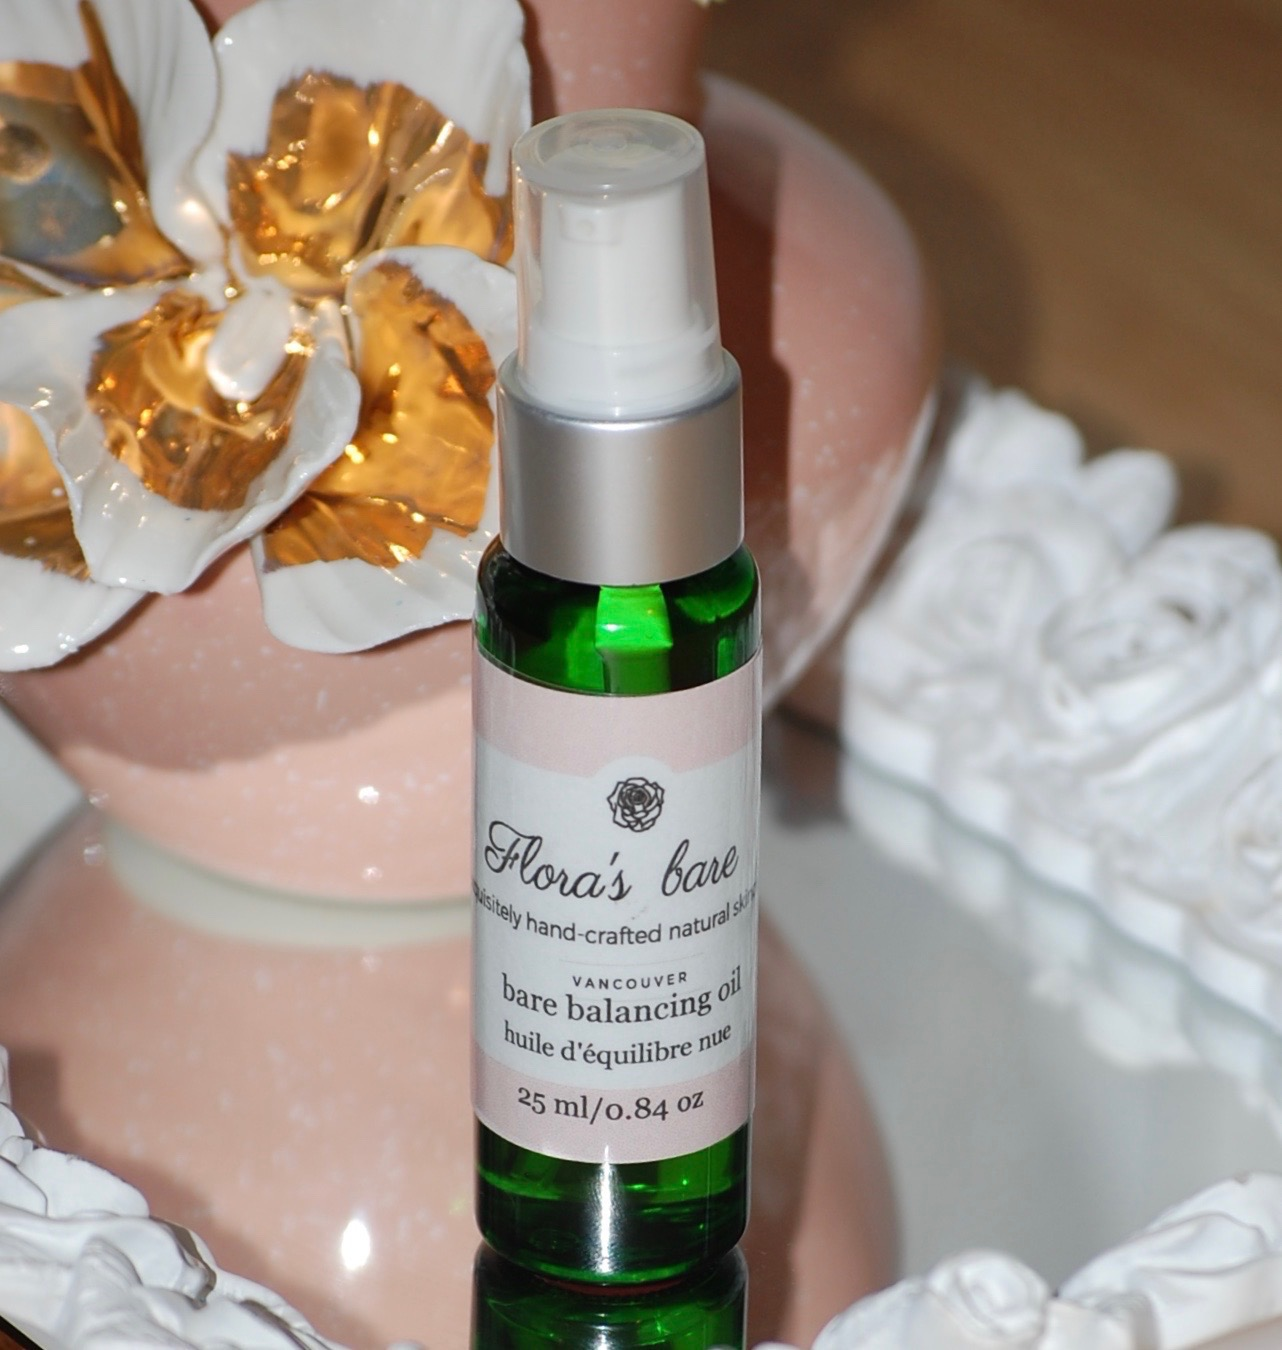 Bare Balancing Serum-this incredible oil is beneficial in balancing an unbalanced skin. - Not just for oily, acne skin but also very beneficial to eczema, rosacea and irritated skin. Packed with powerful oils that leaves your skin feeling soothed and irritation free.Helichrysum essential oil, our star ingredient - obtained from the bright and fiery helichrysum flowers; helichrysum is a precious oil that is quite expensive but rigorous in its healing action. Excellent for sunburned, mature skin and skin conditions like eczema, psoriasis and acne because of its cell renewal properties. Helichrysum oil has powerful wound healing effects. Antioxidant, anti-fungal , antibacterial and anti-inflammatory. A fantastic addition to our balancing oil blend.Jojoba oil - is very similar to our own natural oils on our skin, helping it to blend and be easily absorbed into the skin.Evening Primrose Oil - is packed with omega 6 fatty acid which is critical for healthy skin. Helping tame inflammation and balancing the oils of the skin, reducing itching and swelling.Squalene oil - naturally extracted from olive oil, enhances the skin's ability to naturally regenerate as it hydrates and oxygenates. As a natural antibacterial agent, it is effectively used to treat eczema, psoriasis and other unbalanced skin conditions. Light and easily absorbed it helps to soothe and softens the most delicate skinsGeranium essential oil - this oil has placed in the top for essential oils to help with battling acne, eczema and dermatitis as it helps to soothe and reduce redness and irritation on the skin. Geranium is known for its regenerative properties helping to elevate tension and help with hormonal moods.Ylang Ylang essential oil - this essential oil comes from the flowering petals of the Ylang Ylang Tree: a sweet, erotic smelling oil that helps to lift moods and lighten spirits while slowing down sebaceous secretions.